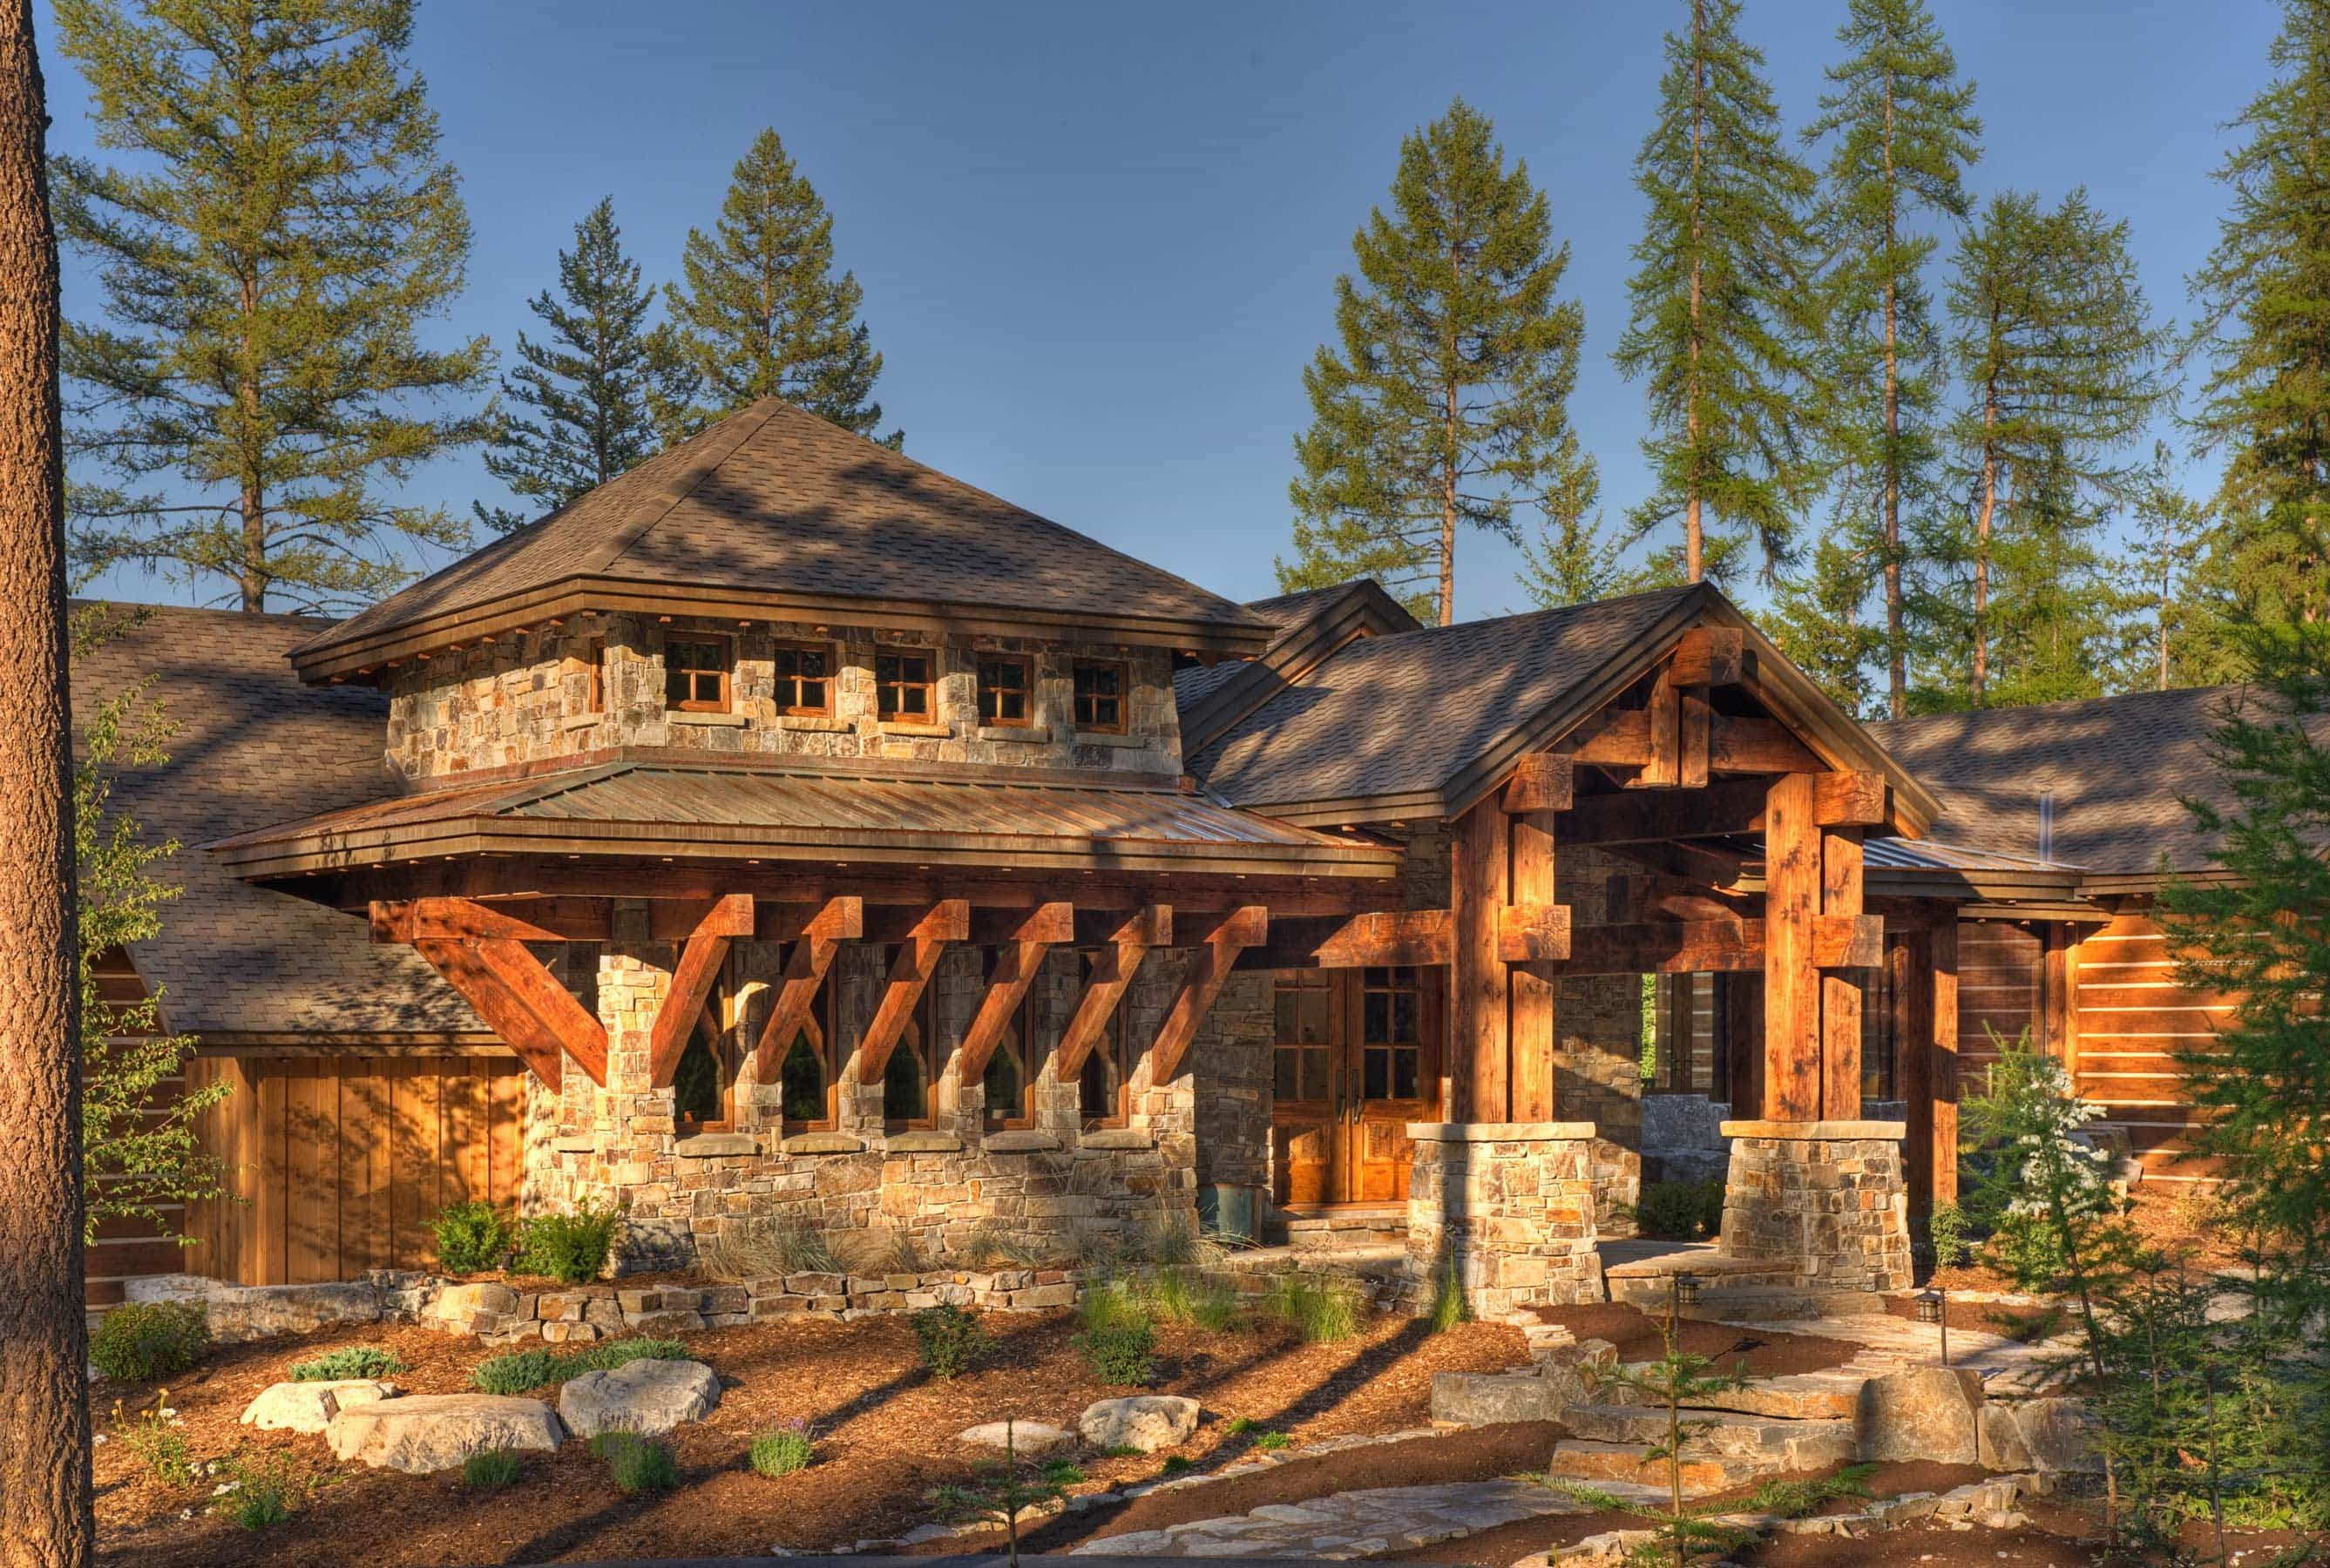 Big Sky architects designed home in Whitefish Montana by Stillwater Architecture